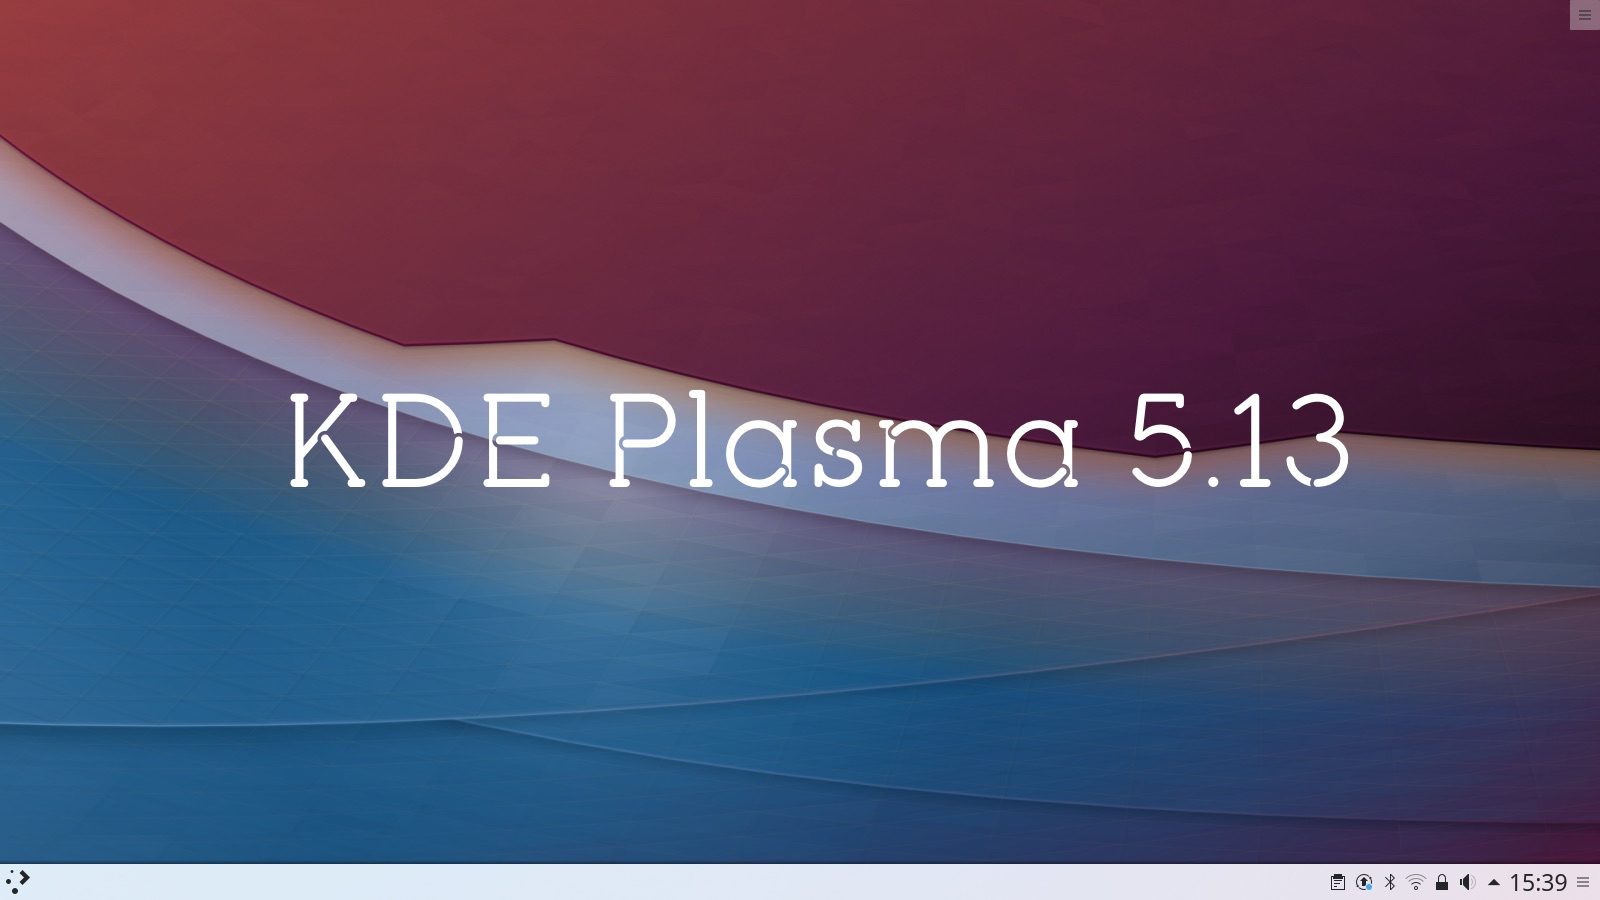 Kde plasma 5.13 desktop screenshot